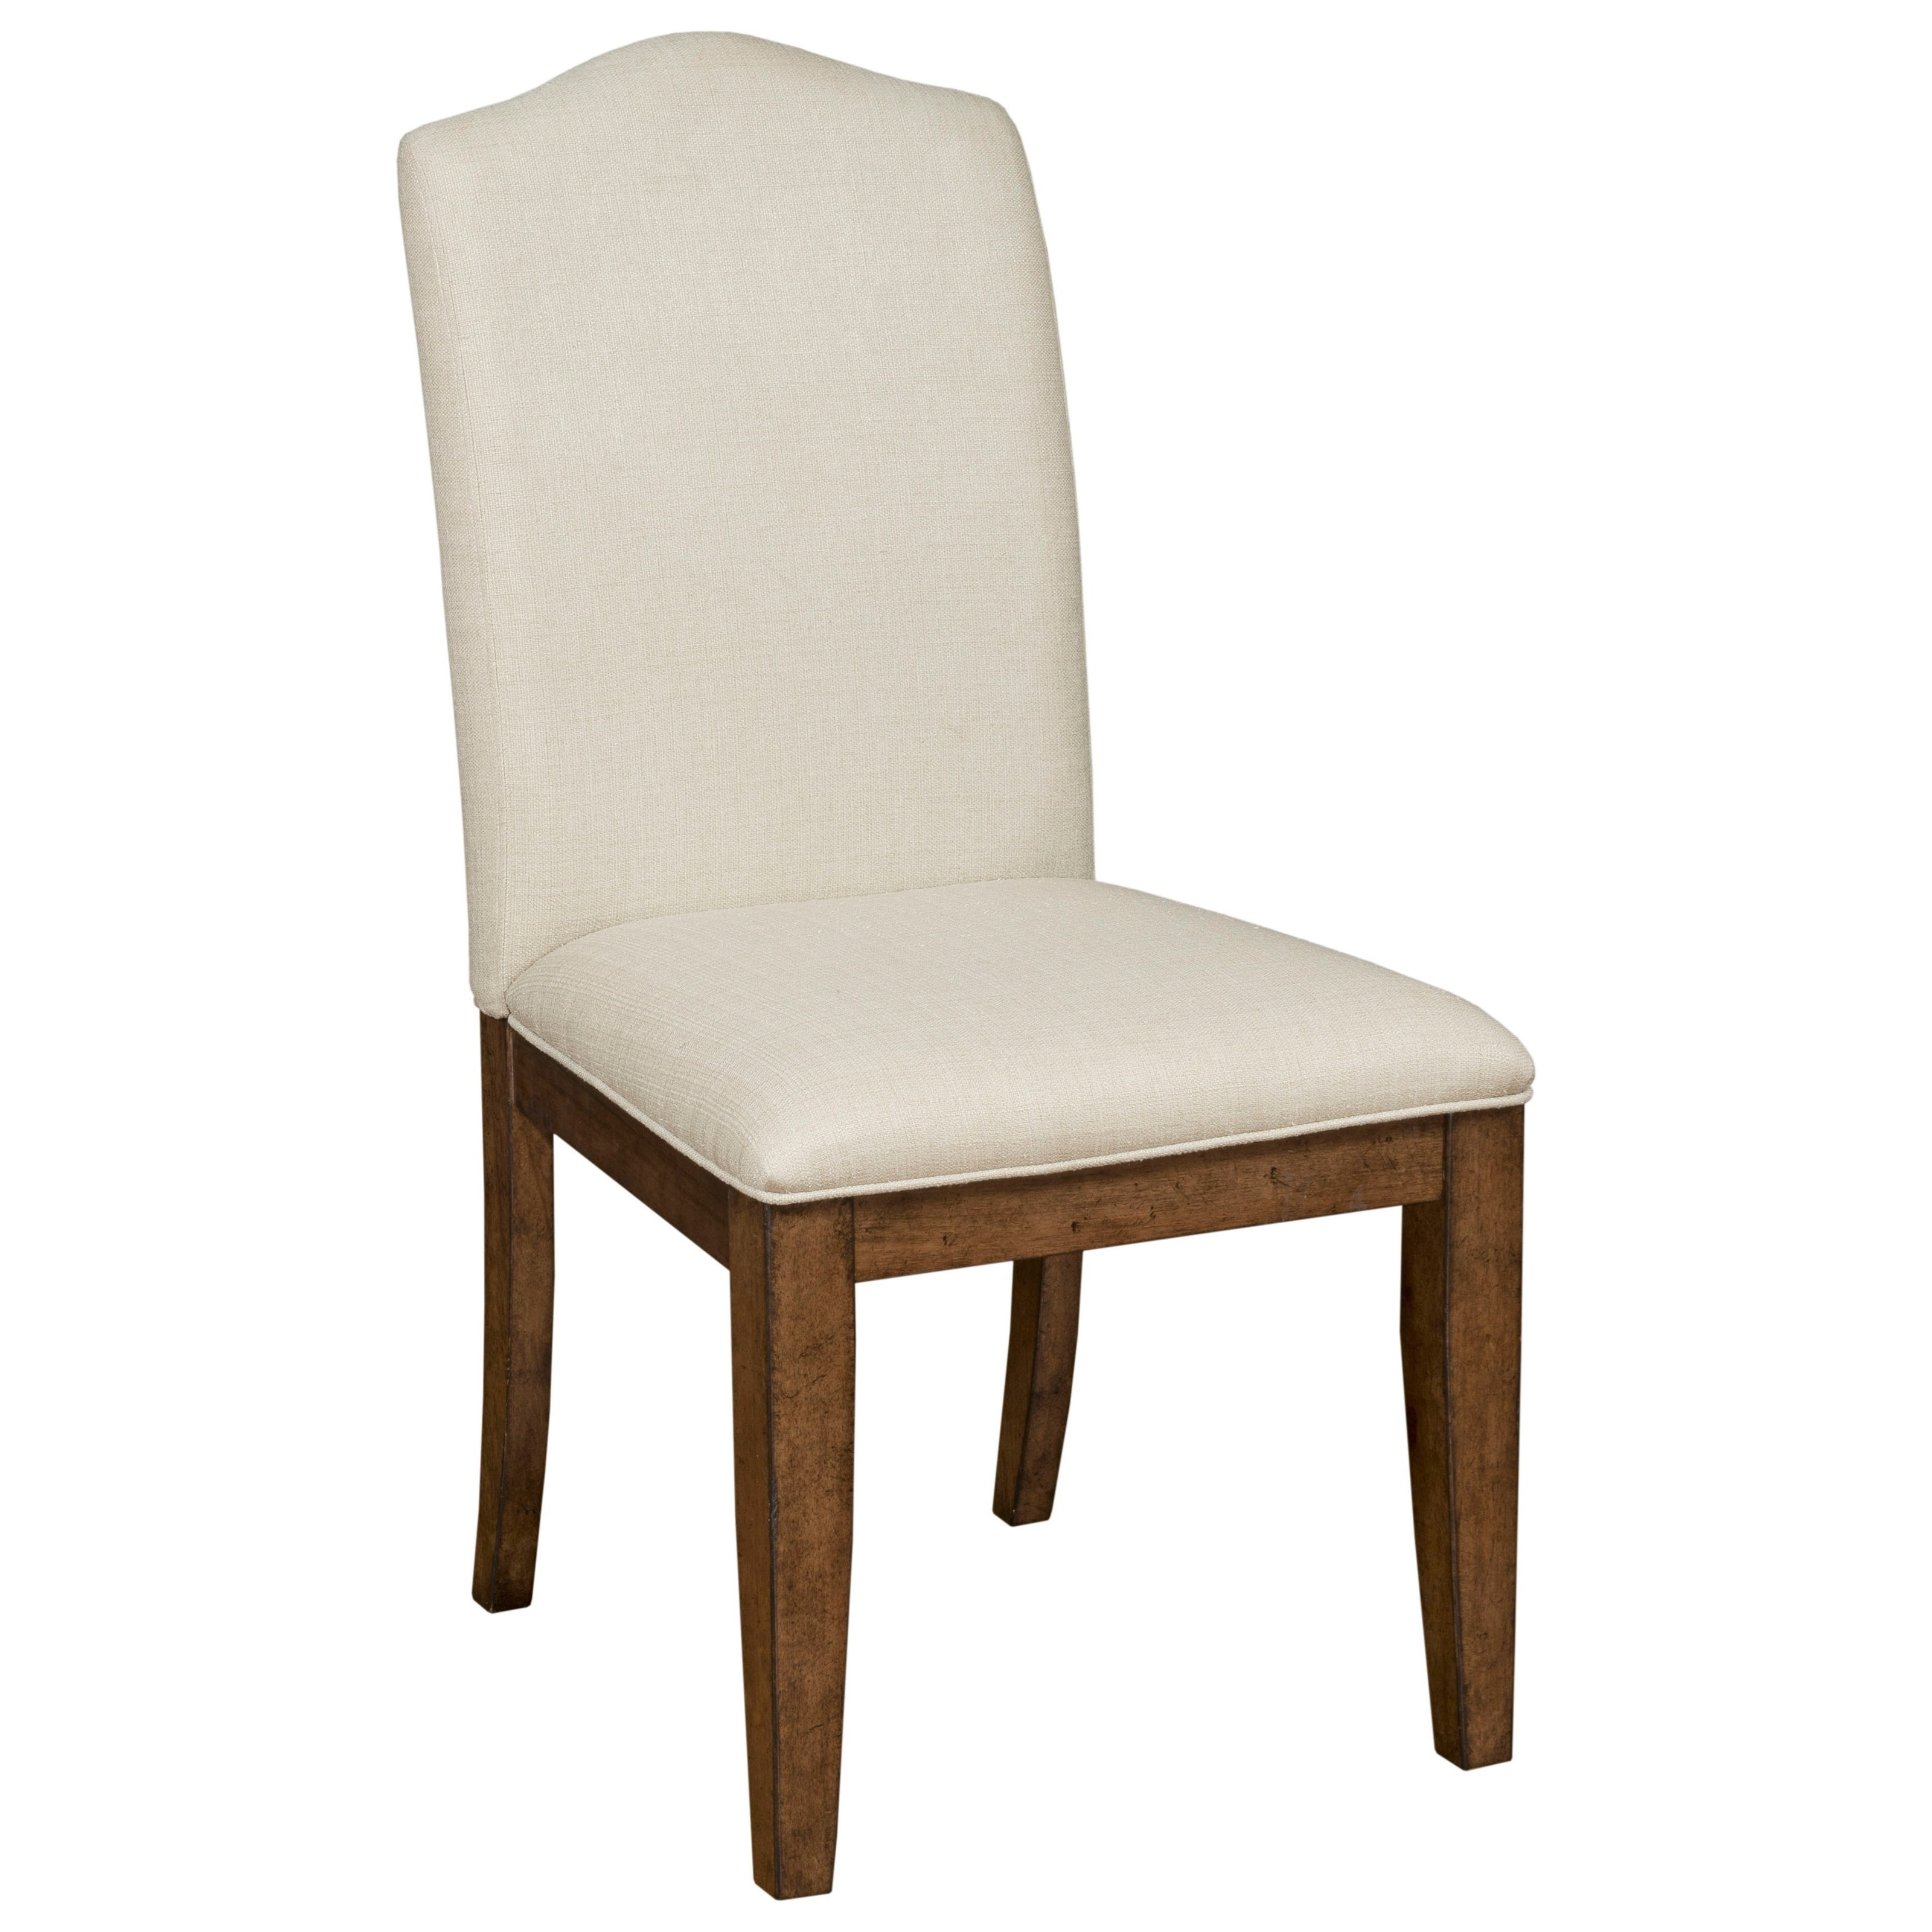 Kincaid Furniture The Nook Parsons Side Chair Stoney  : products2Fkincaidfurniture2Fcolor2Fthe20nook664 641 b1 from www.stoneycreekfurniture.com size 3200 x 3200 jpeg 794kB